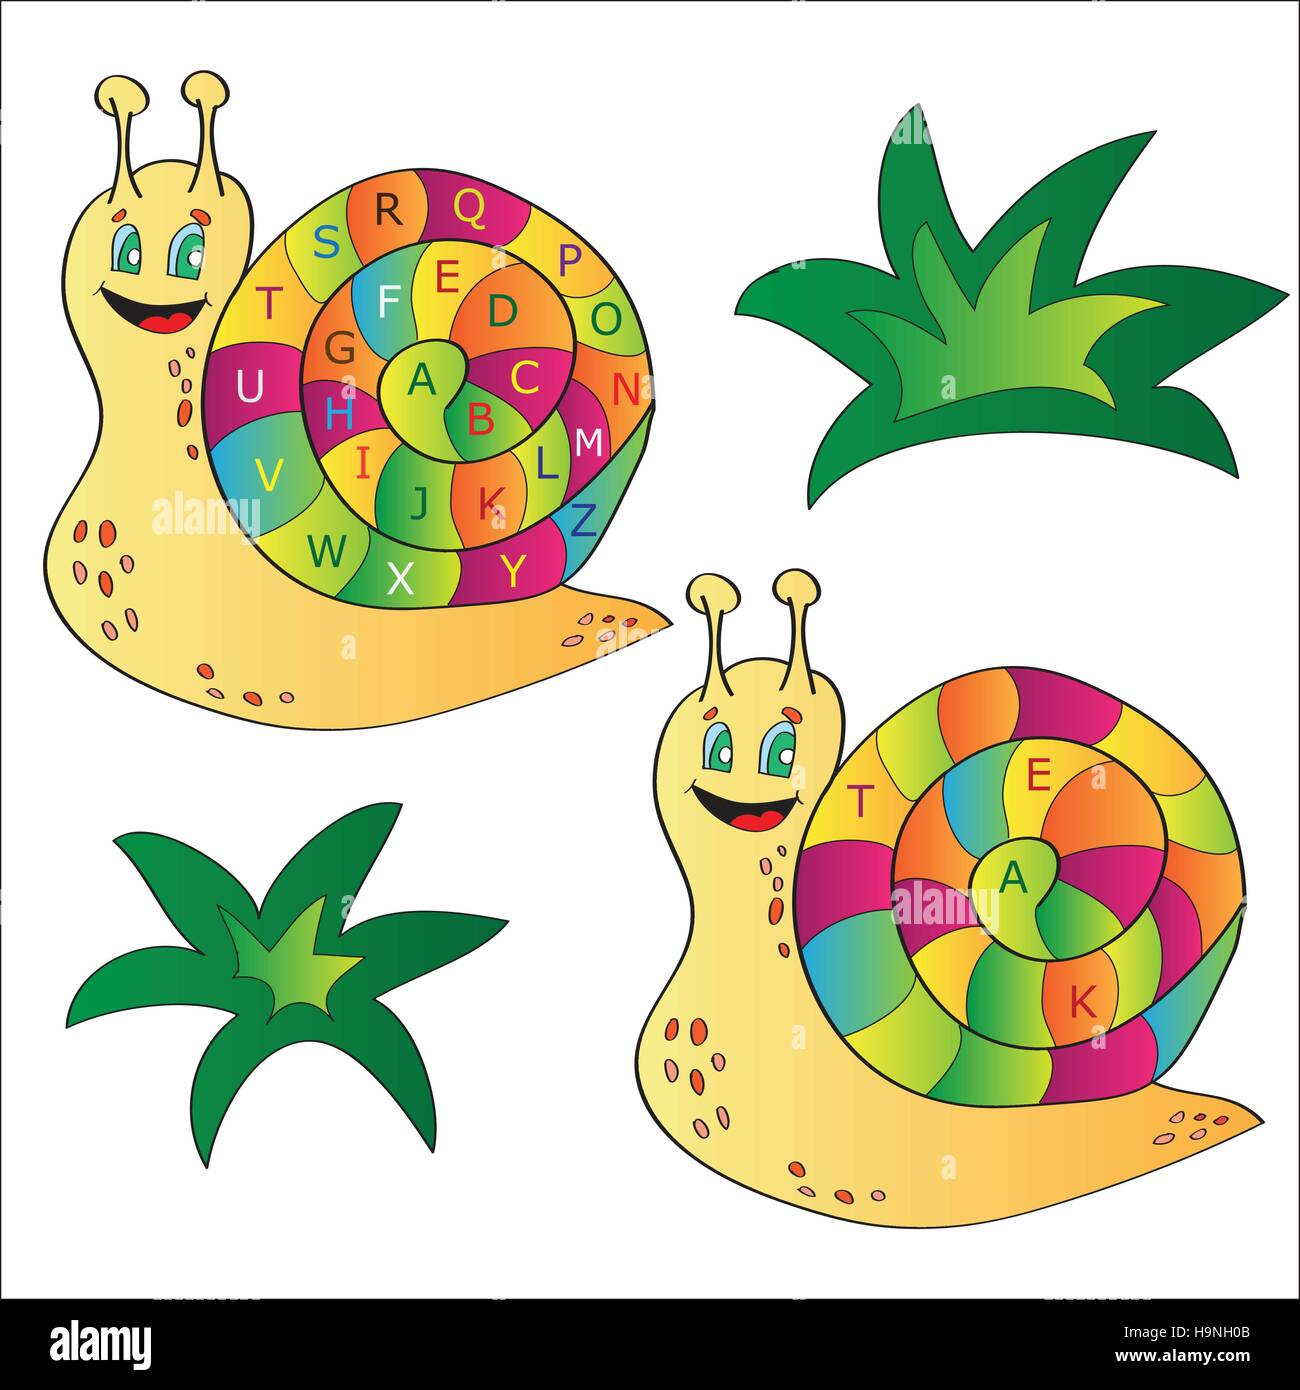 Vector illustration of a snail - a puzzle for child - Stock Vector